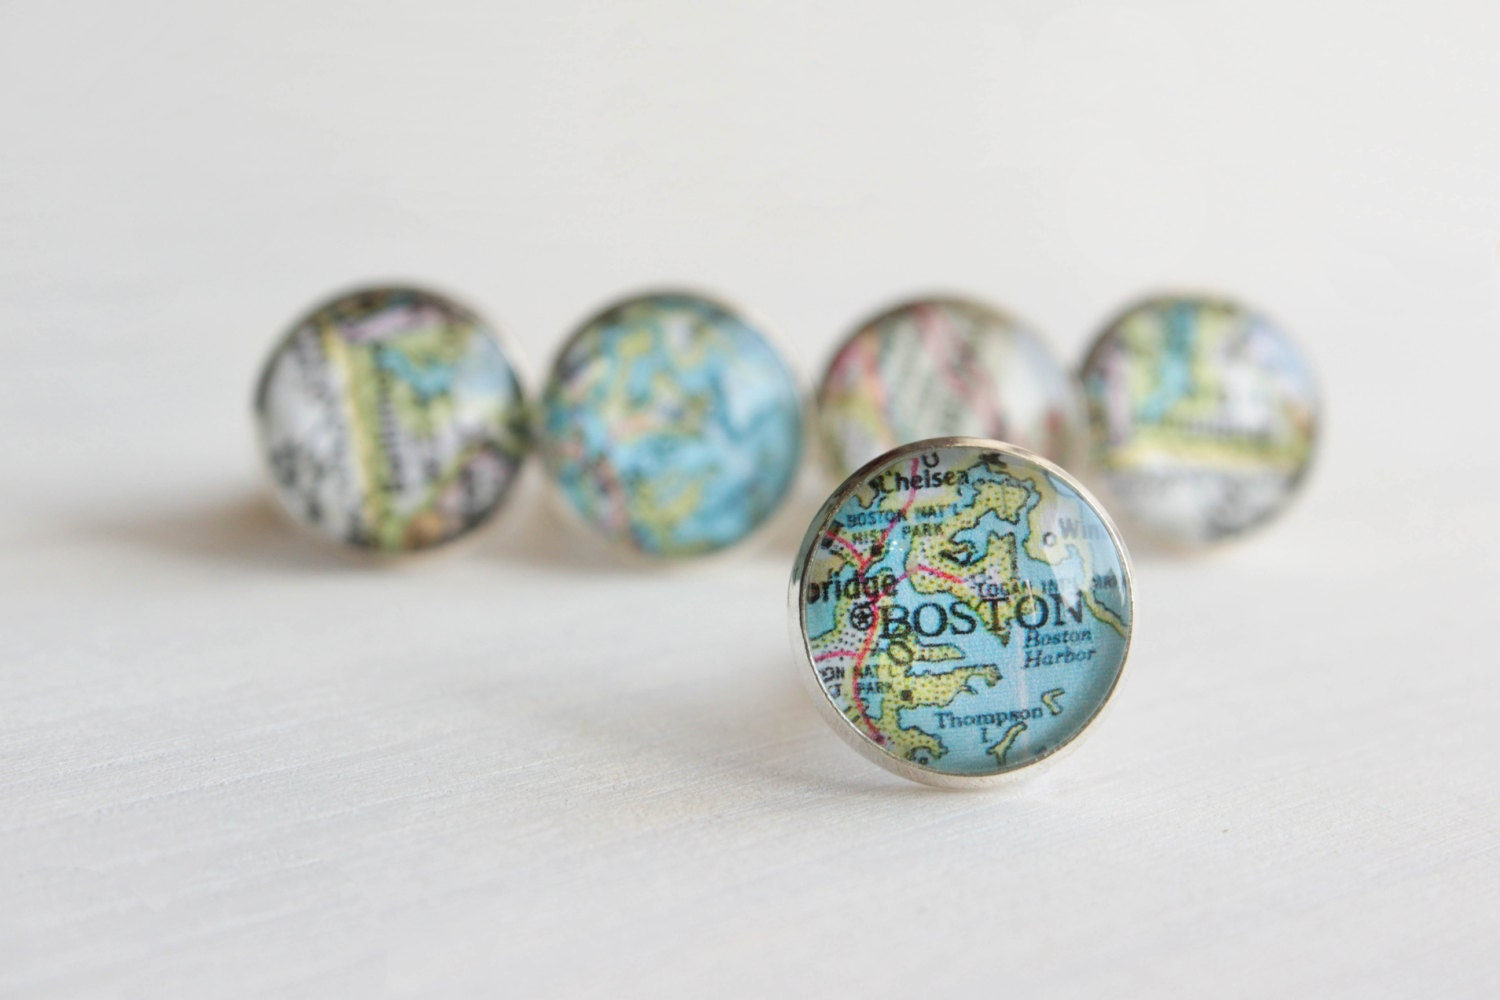 Vintage Map Cuff Links Choose Your Own City Maps